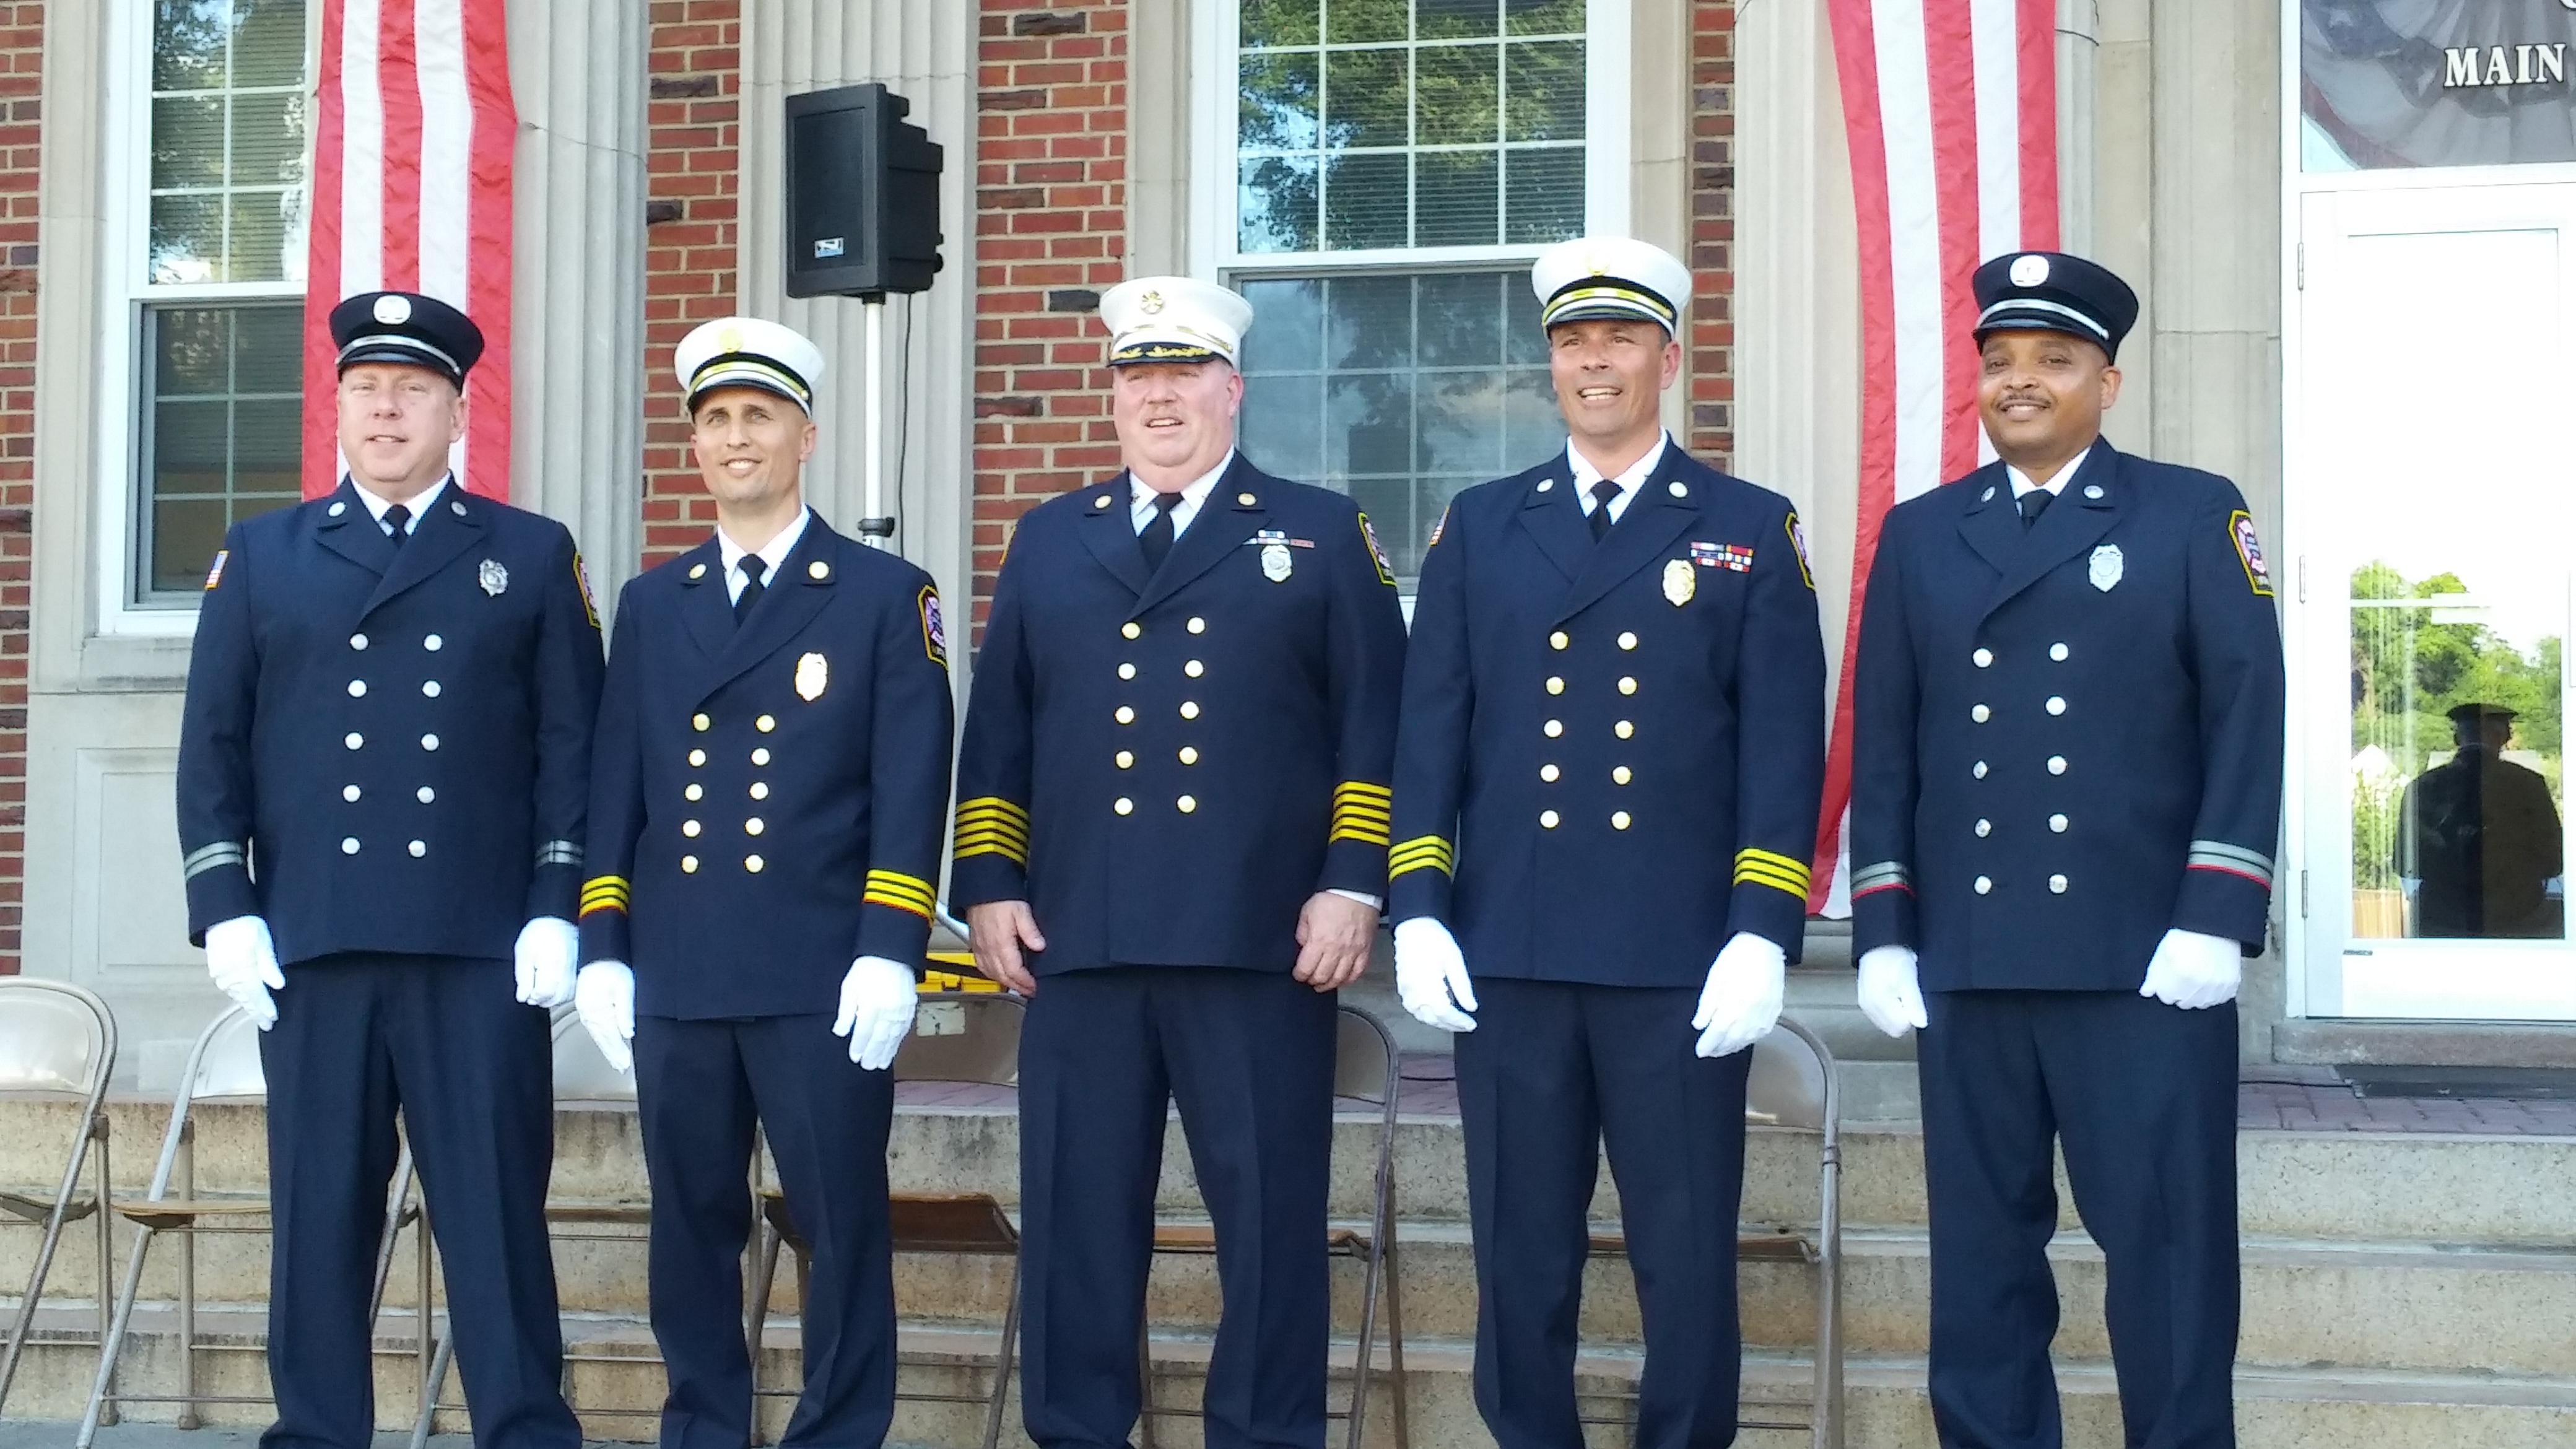 Joint Police & Fire Promotion Ceremony 6/20/17